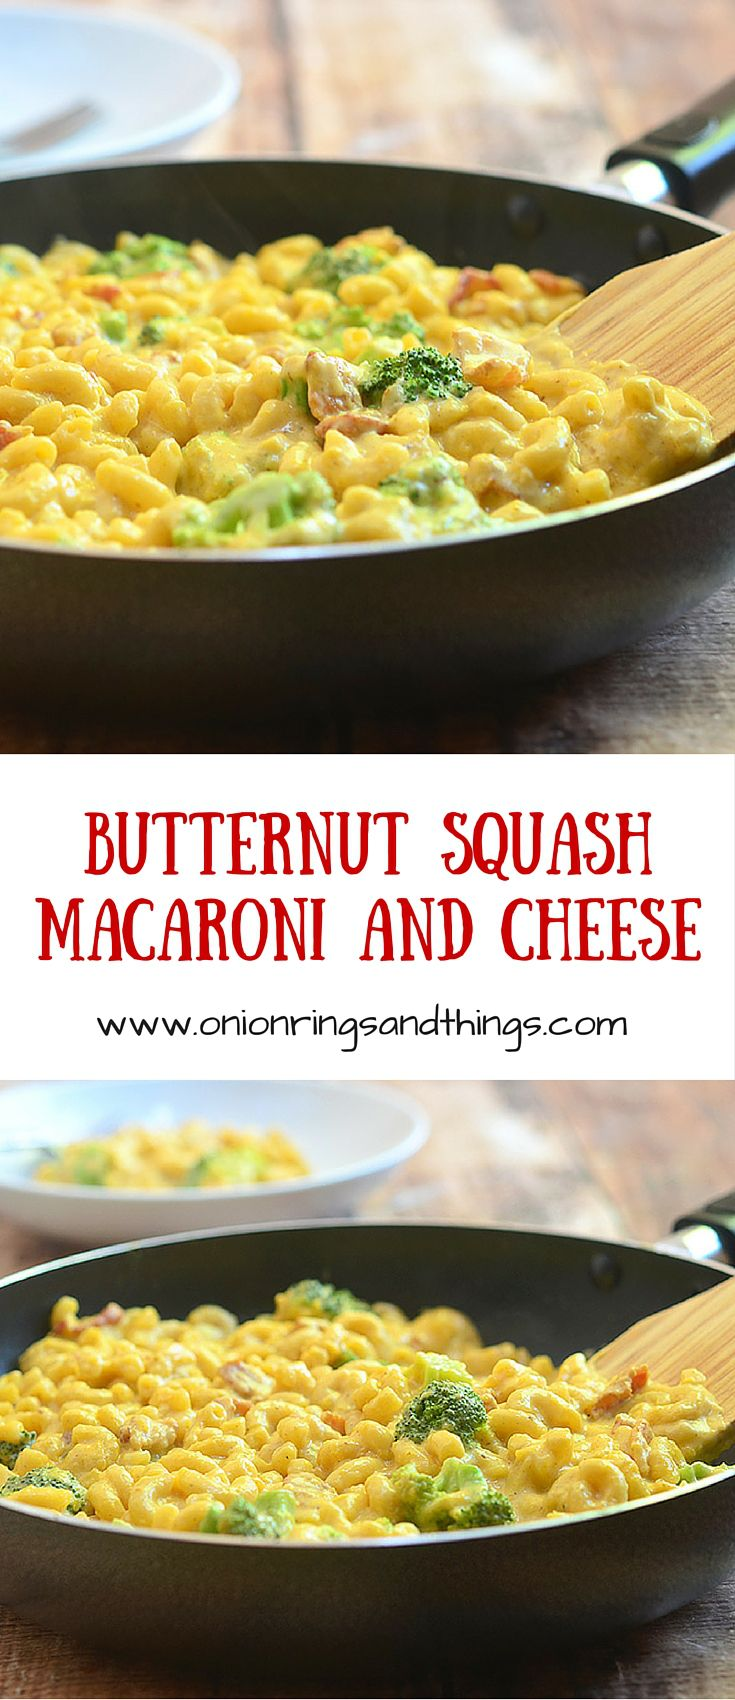 One-Pan Butternut Squash Macaroni and Cheese | Recipe ...